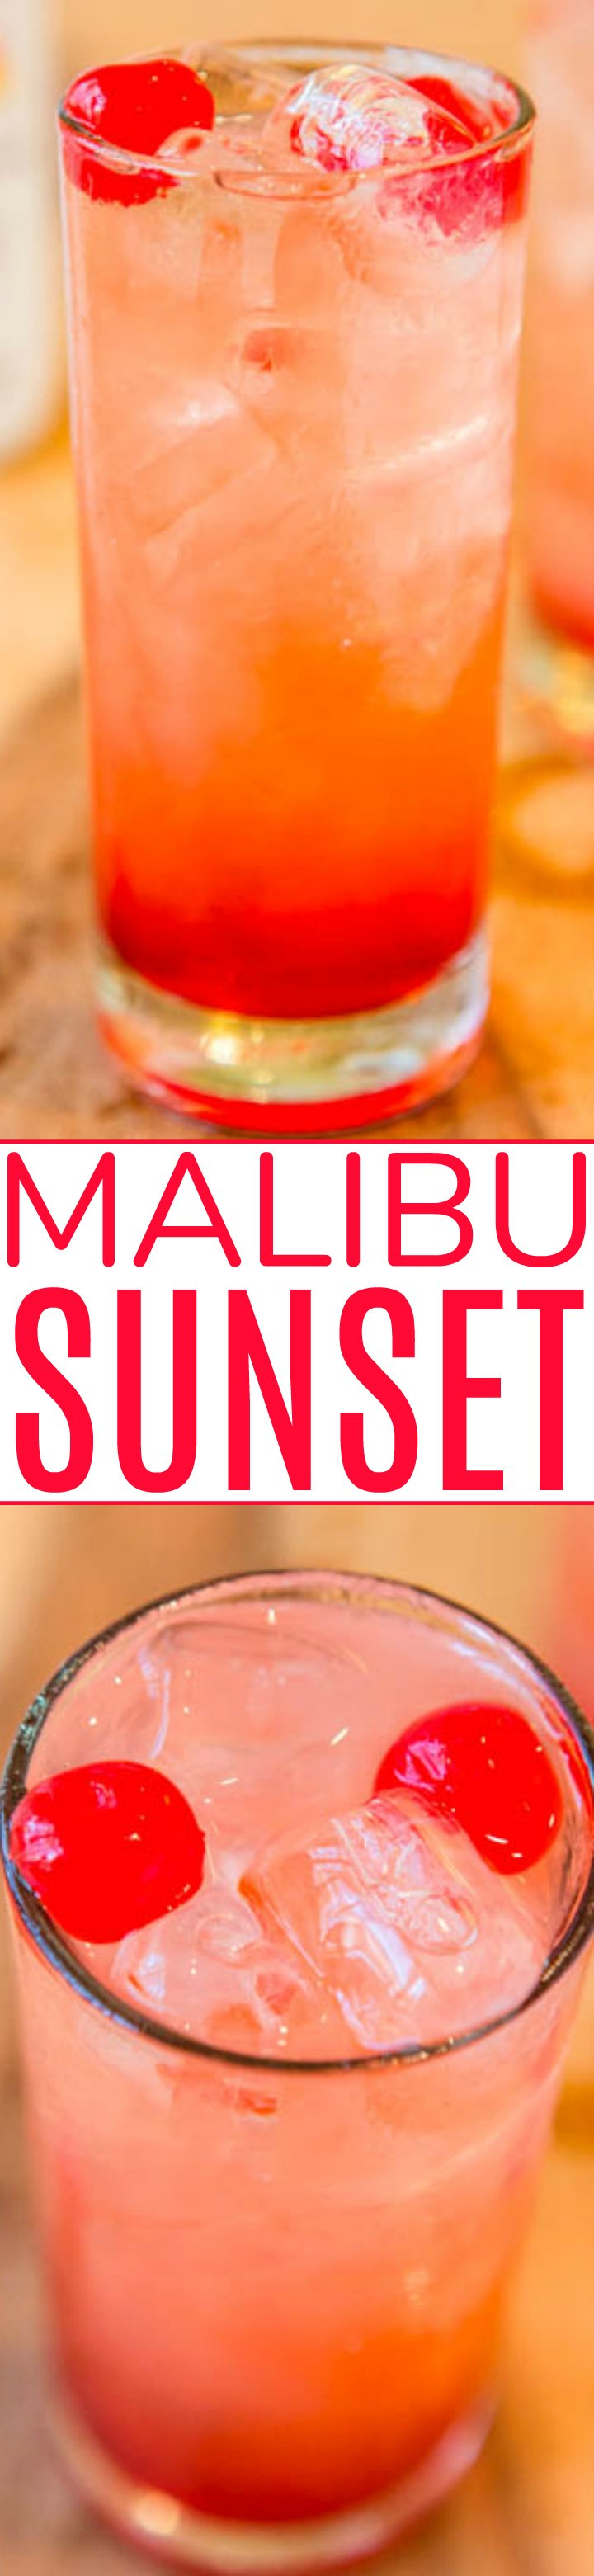 Malibu Sunset: A fun, fruity, easy Malibu drink recipe!! Because there's really no wrong way to do pineapple, orange juice, coconut rum, grenadine, and cherries! If you've never had this fruity alcoholic drink, you should change that!!